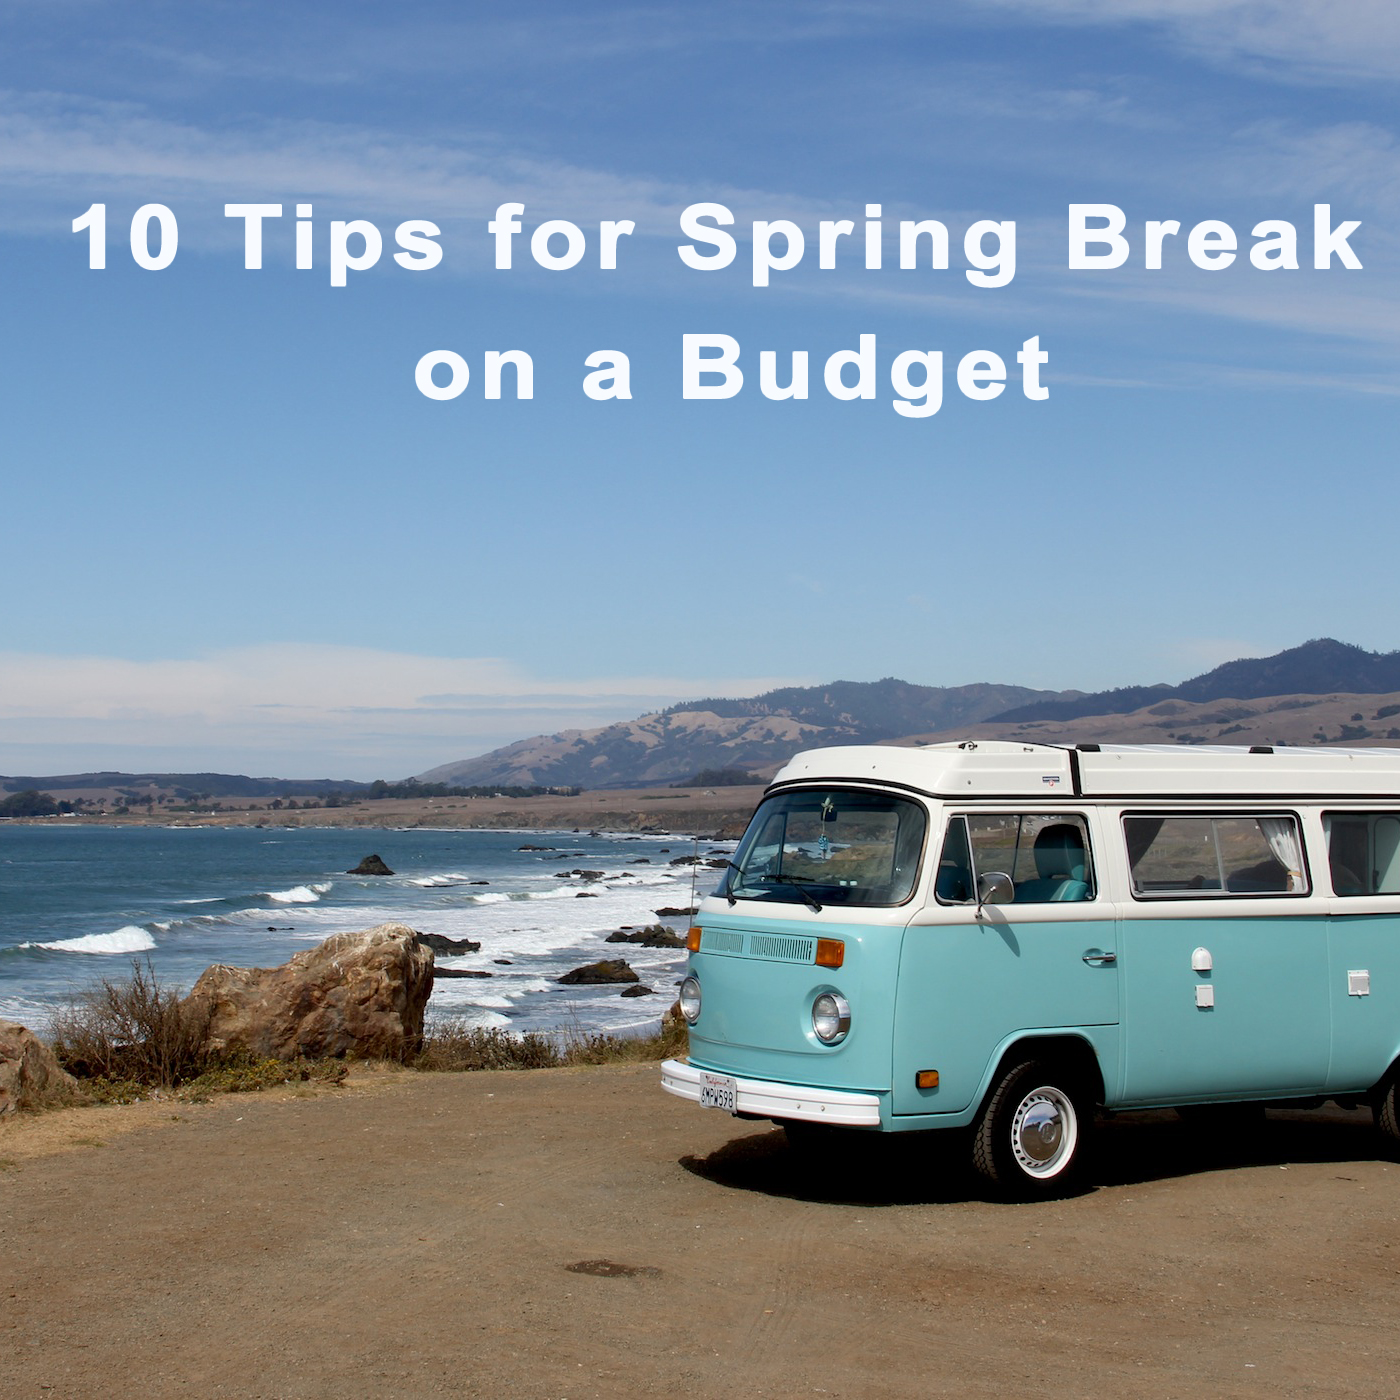 Tips for Spring Break on a Budget